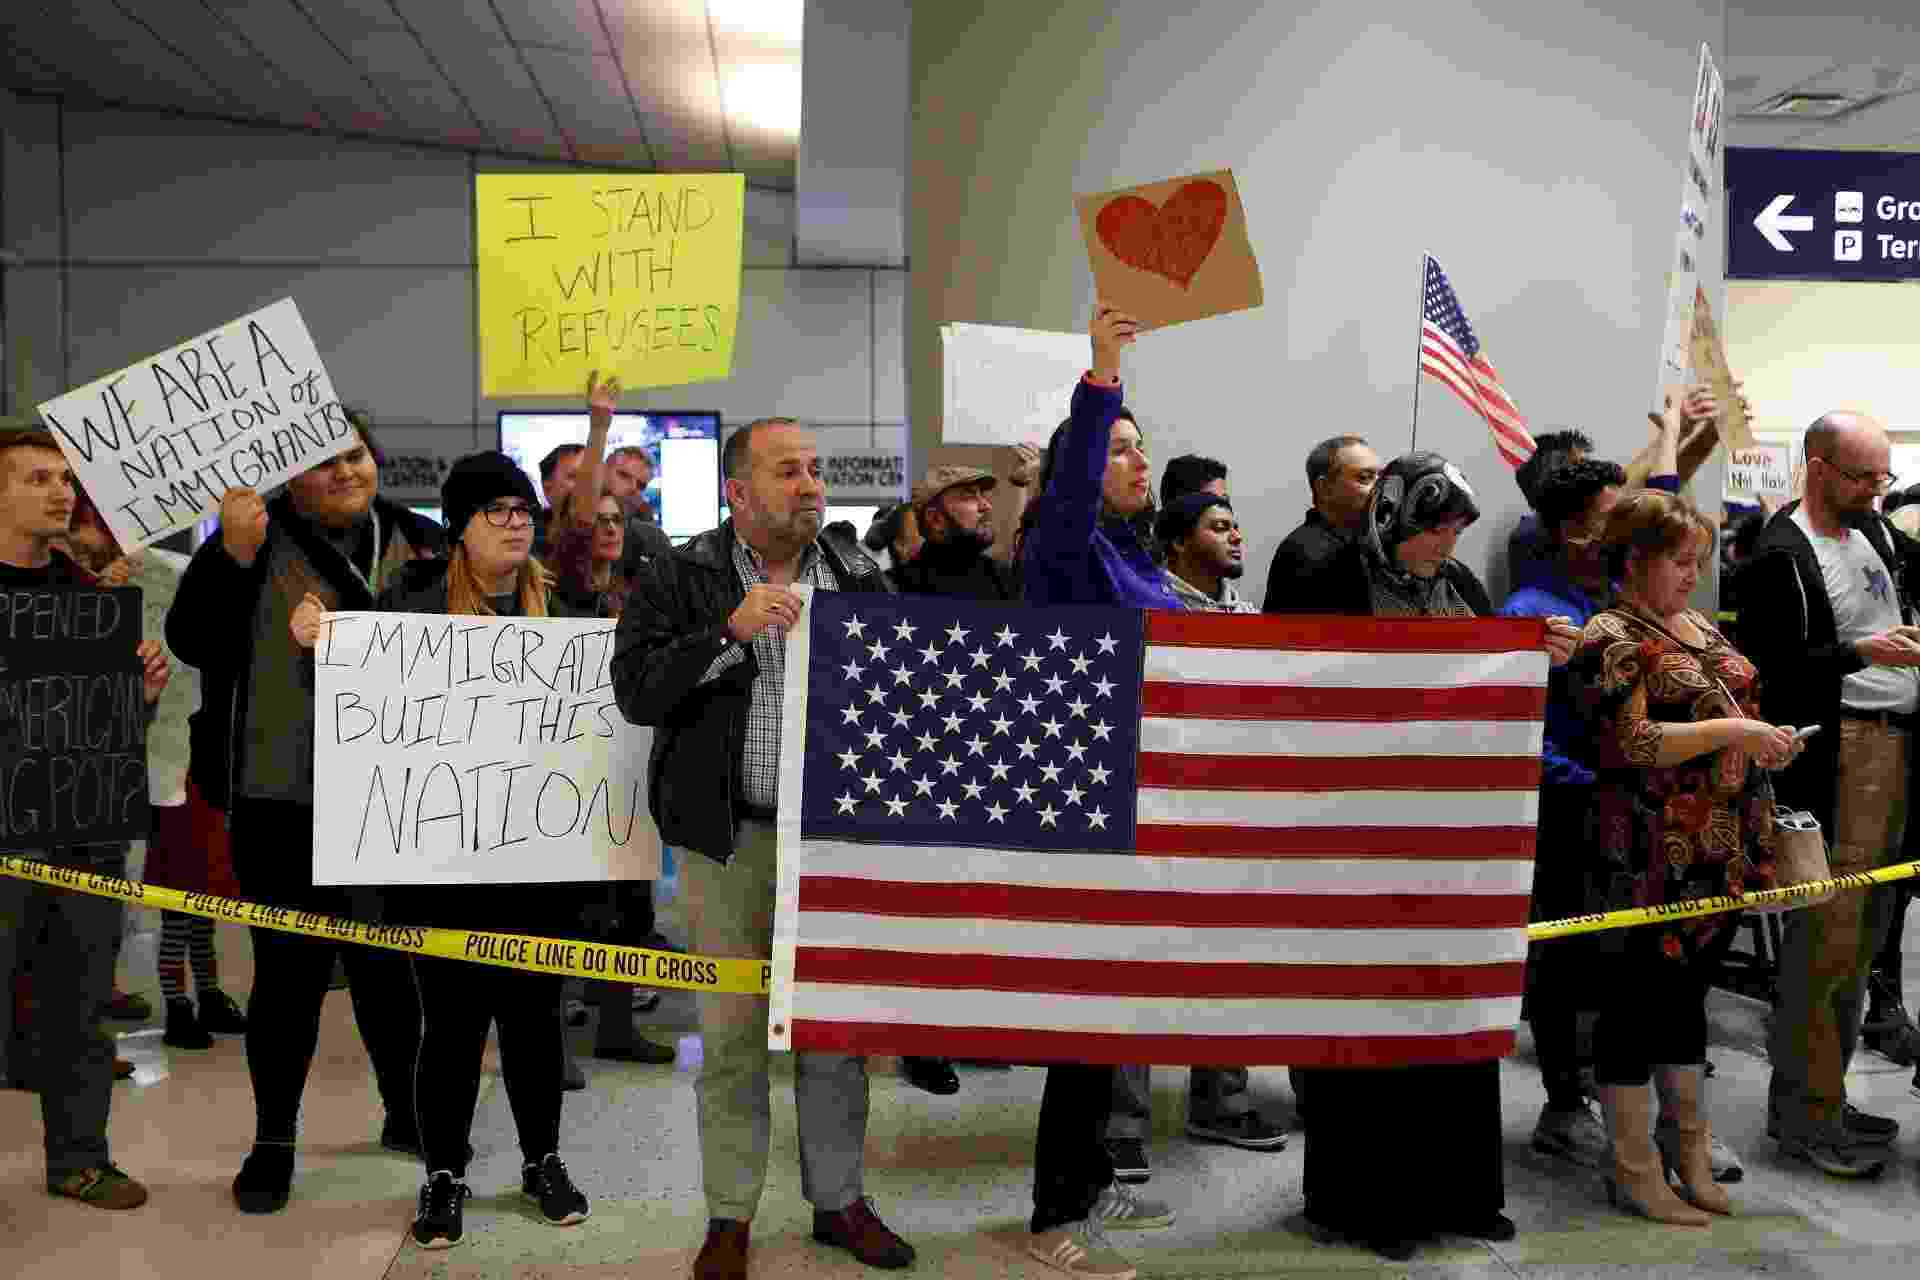 29.jan.2016 - Manifestantes protestam contra bloqueio a imigrantes determinado por decreto do presidente Donald Trump no aeroporto internacional de Dallas, no Texas. A nova regra impõe controle por três meses contra viajantes procedentes de Irã, Iraque, Líbia, Somália, Síria e Iêmen - Morty Ortega/AFP